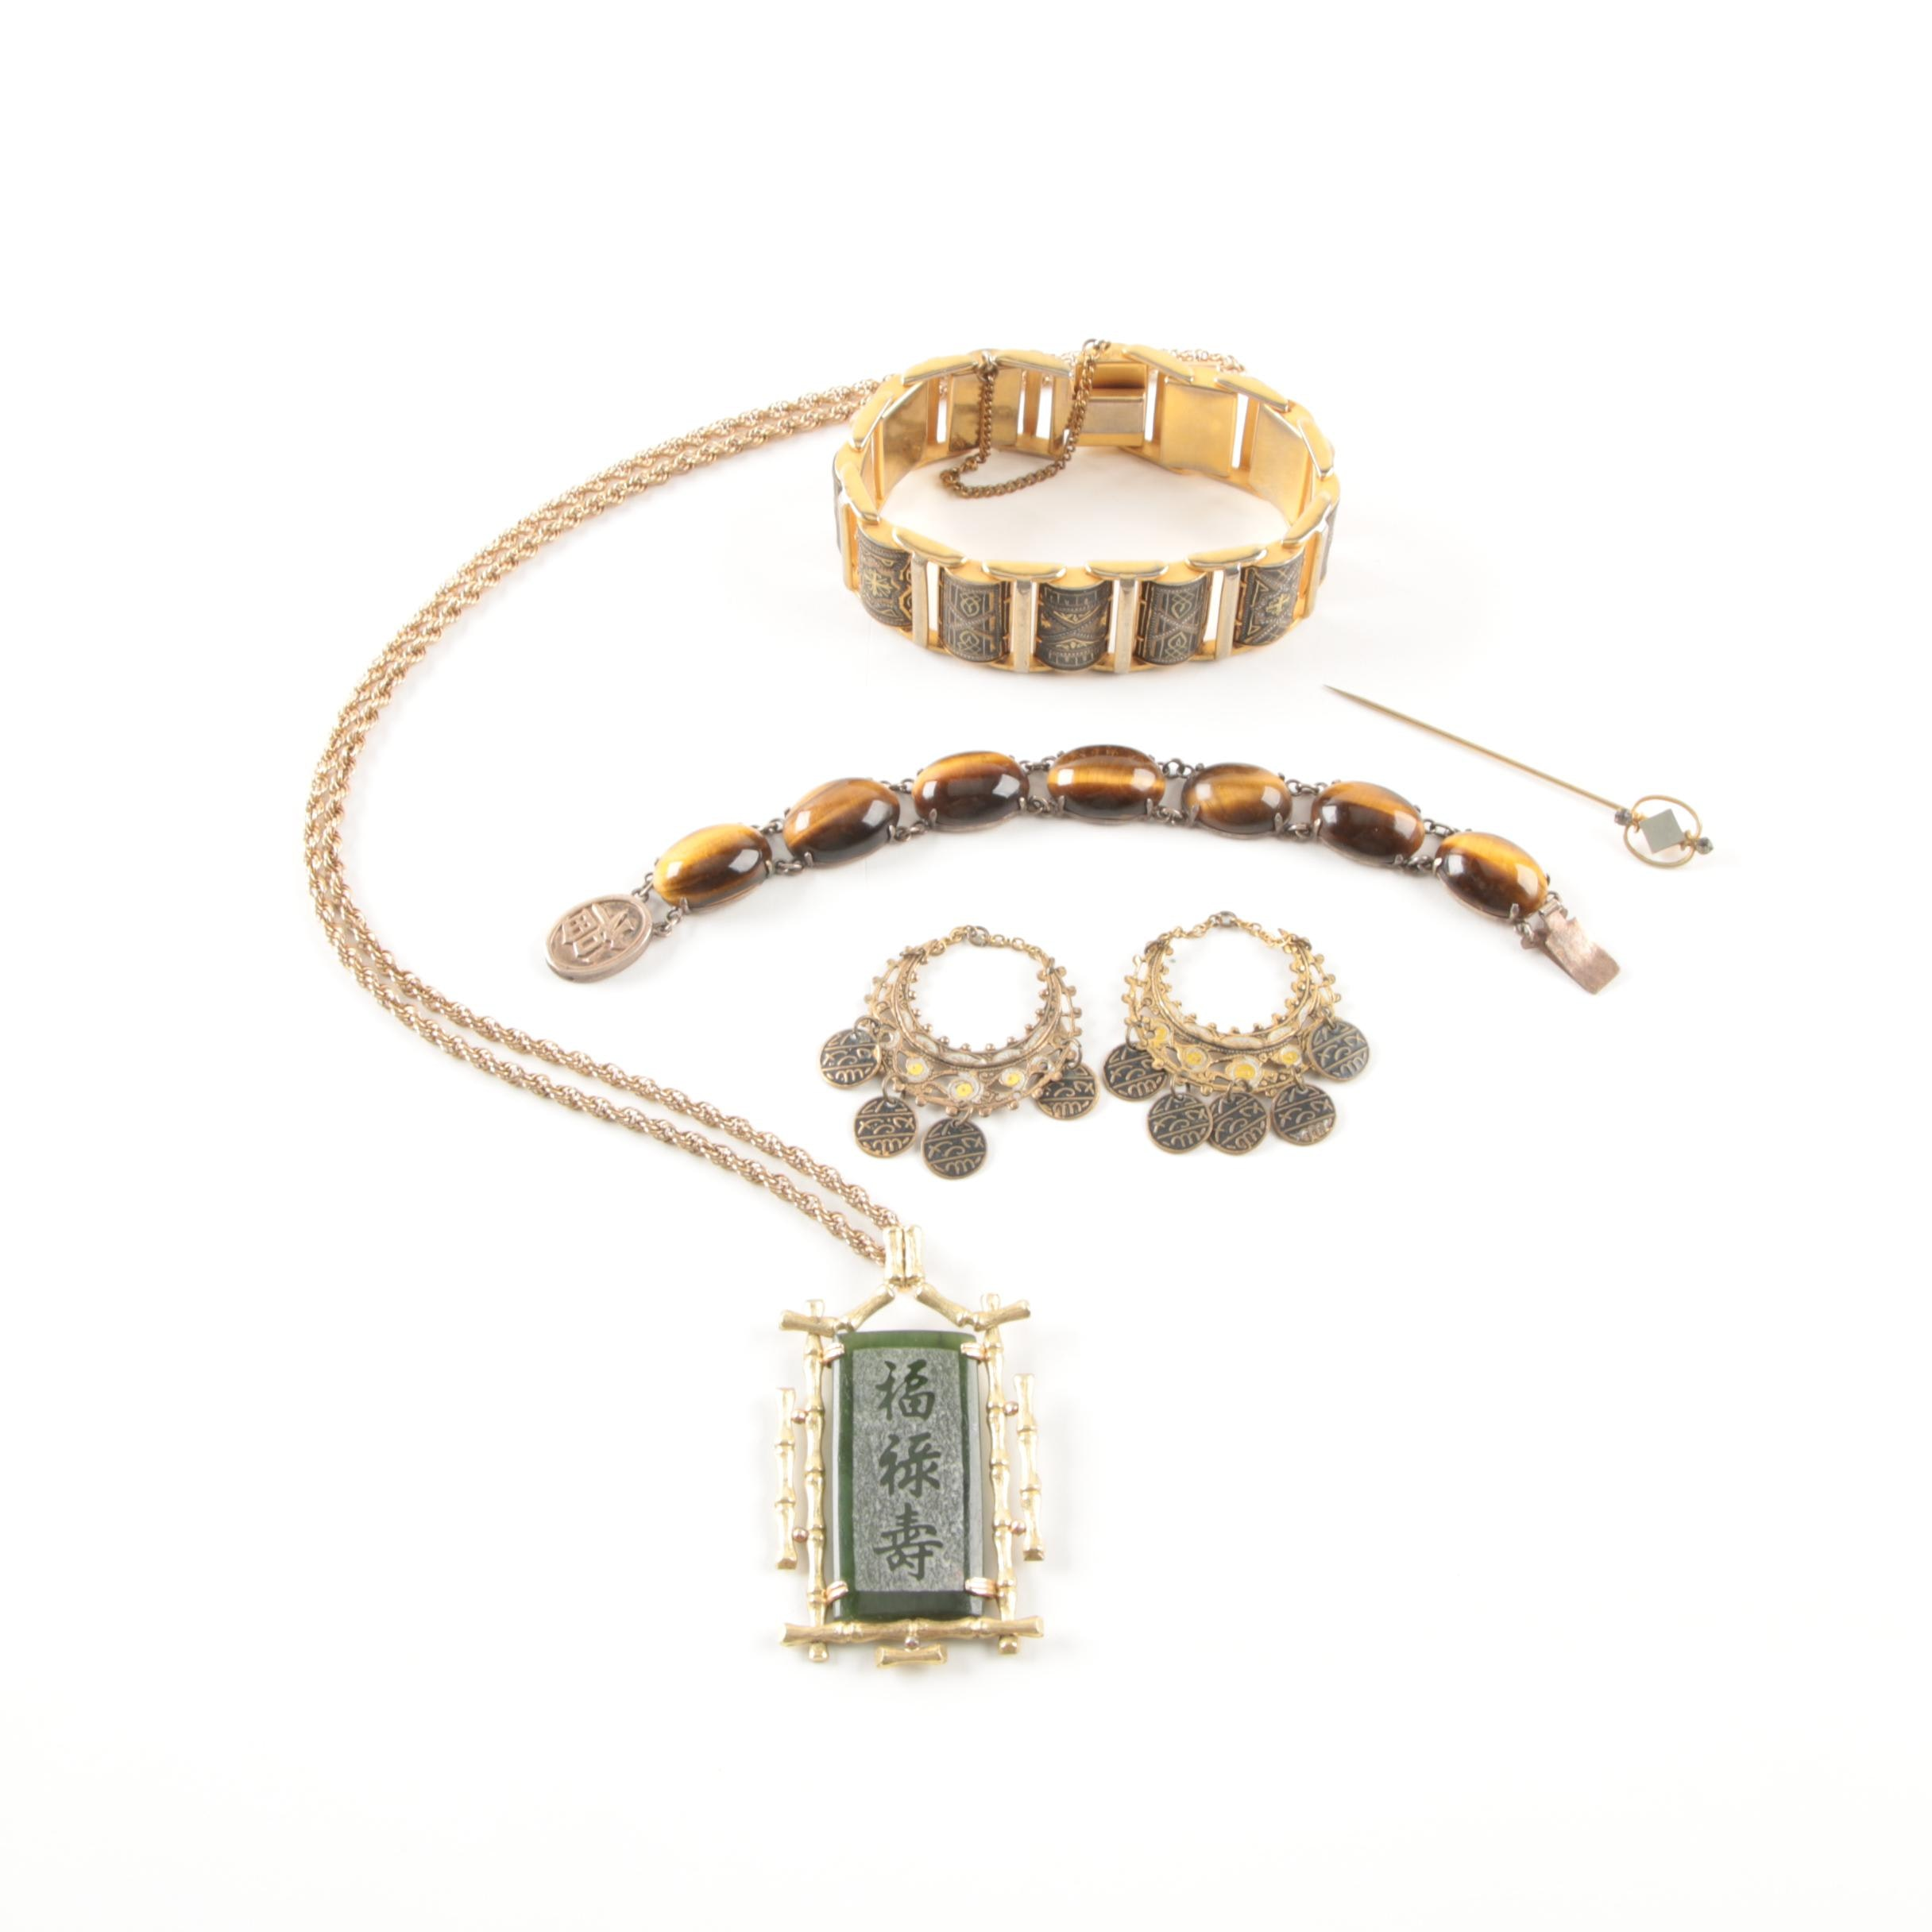 Collection of Gold Toned Jewelry Including a Silver Bracelet